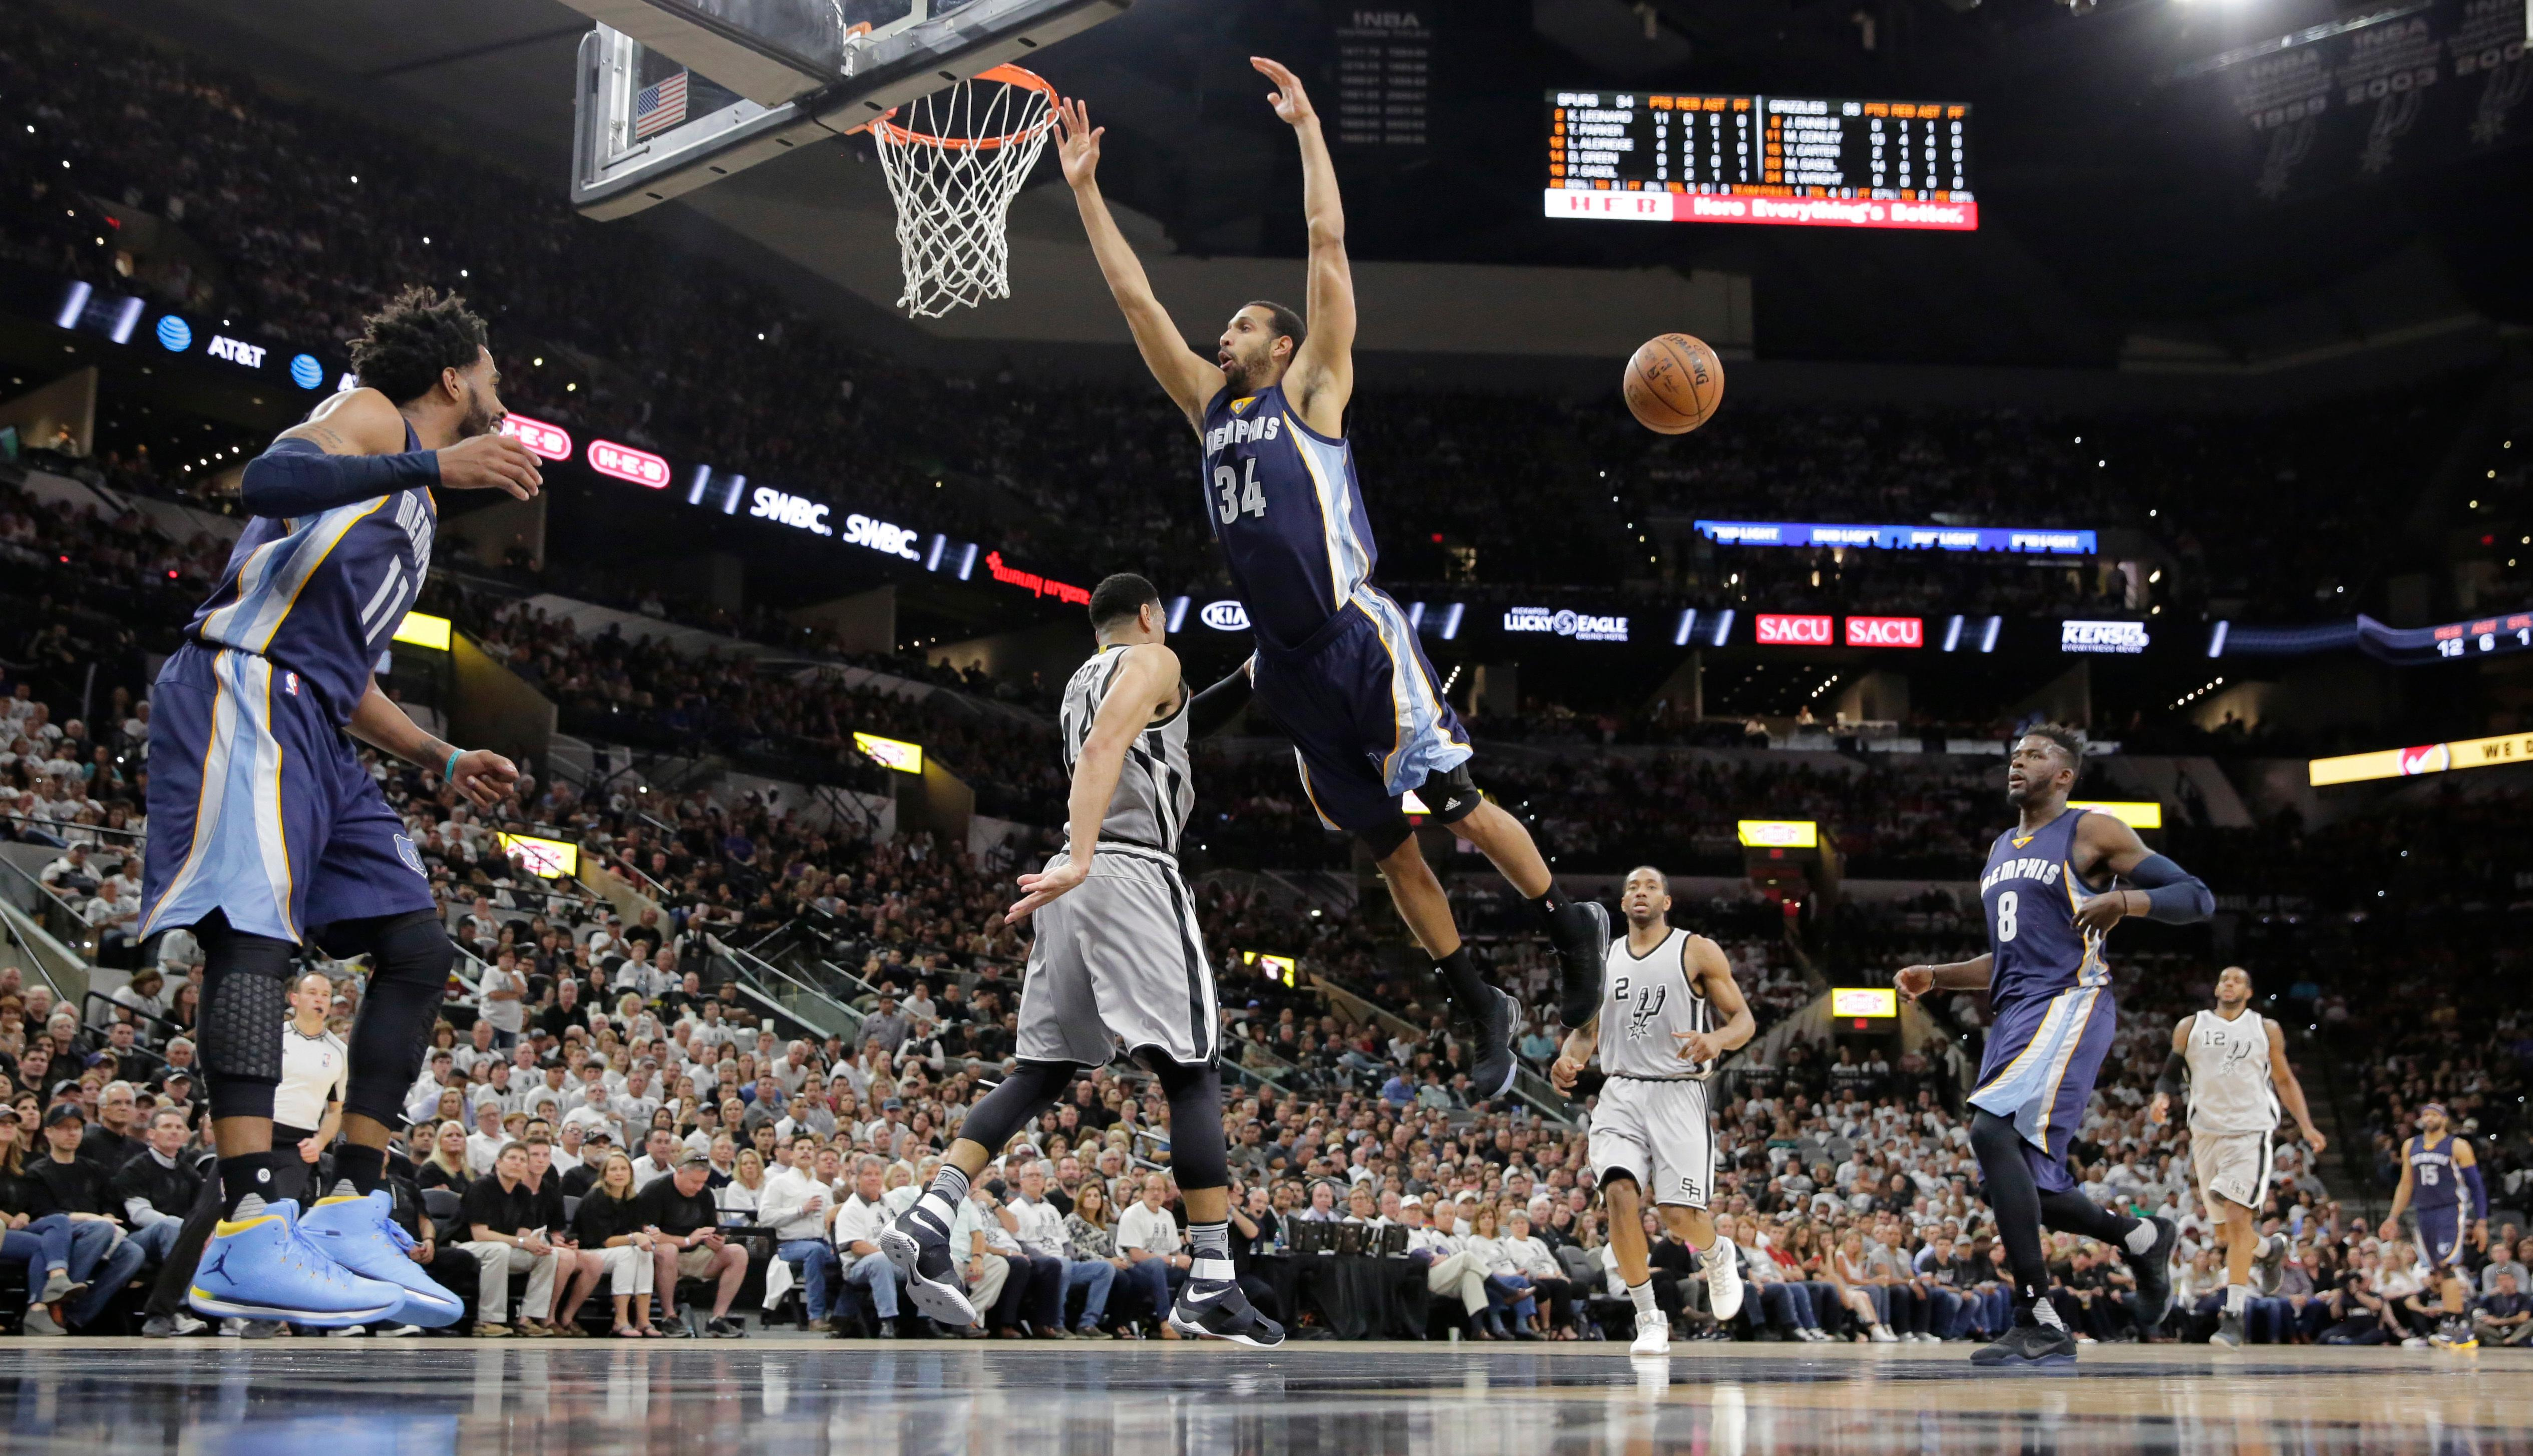 Memphis Grizzlies forward Brandan Wright (34) is stripped of the ball by San Antonio Spurs guard Danny Green (14) as he tries to score during the first half of Game 1 in a first-round NBA basketball playoff series, Saturday, April 15, 2017, in San Antonio. (AP Photo/Eric Gay)